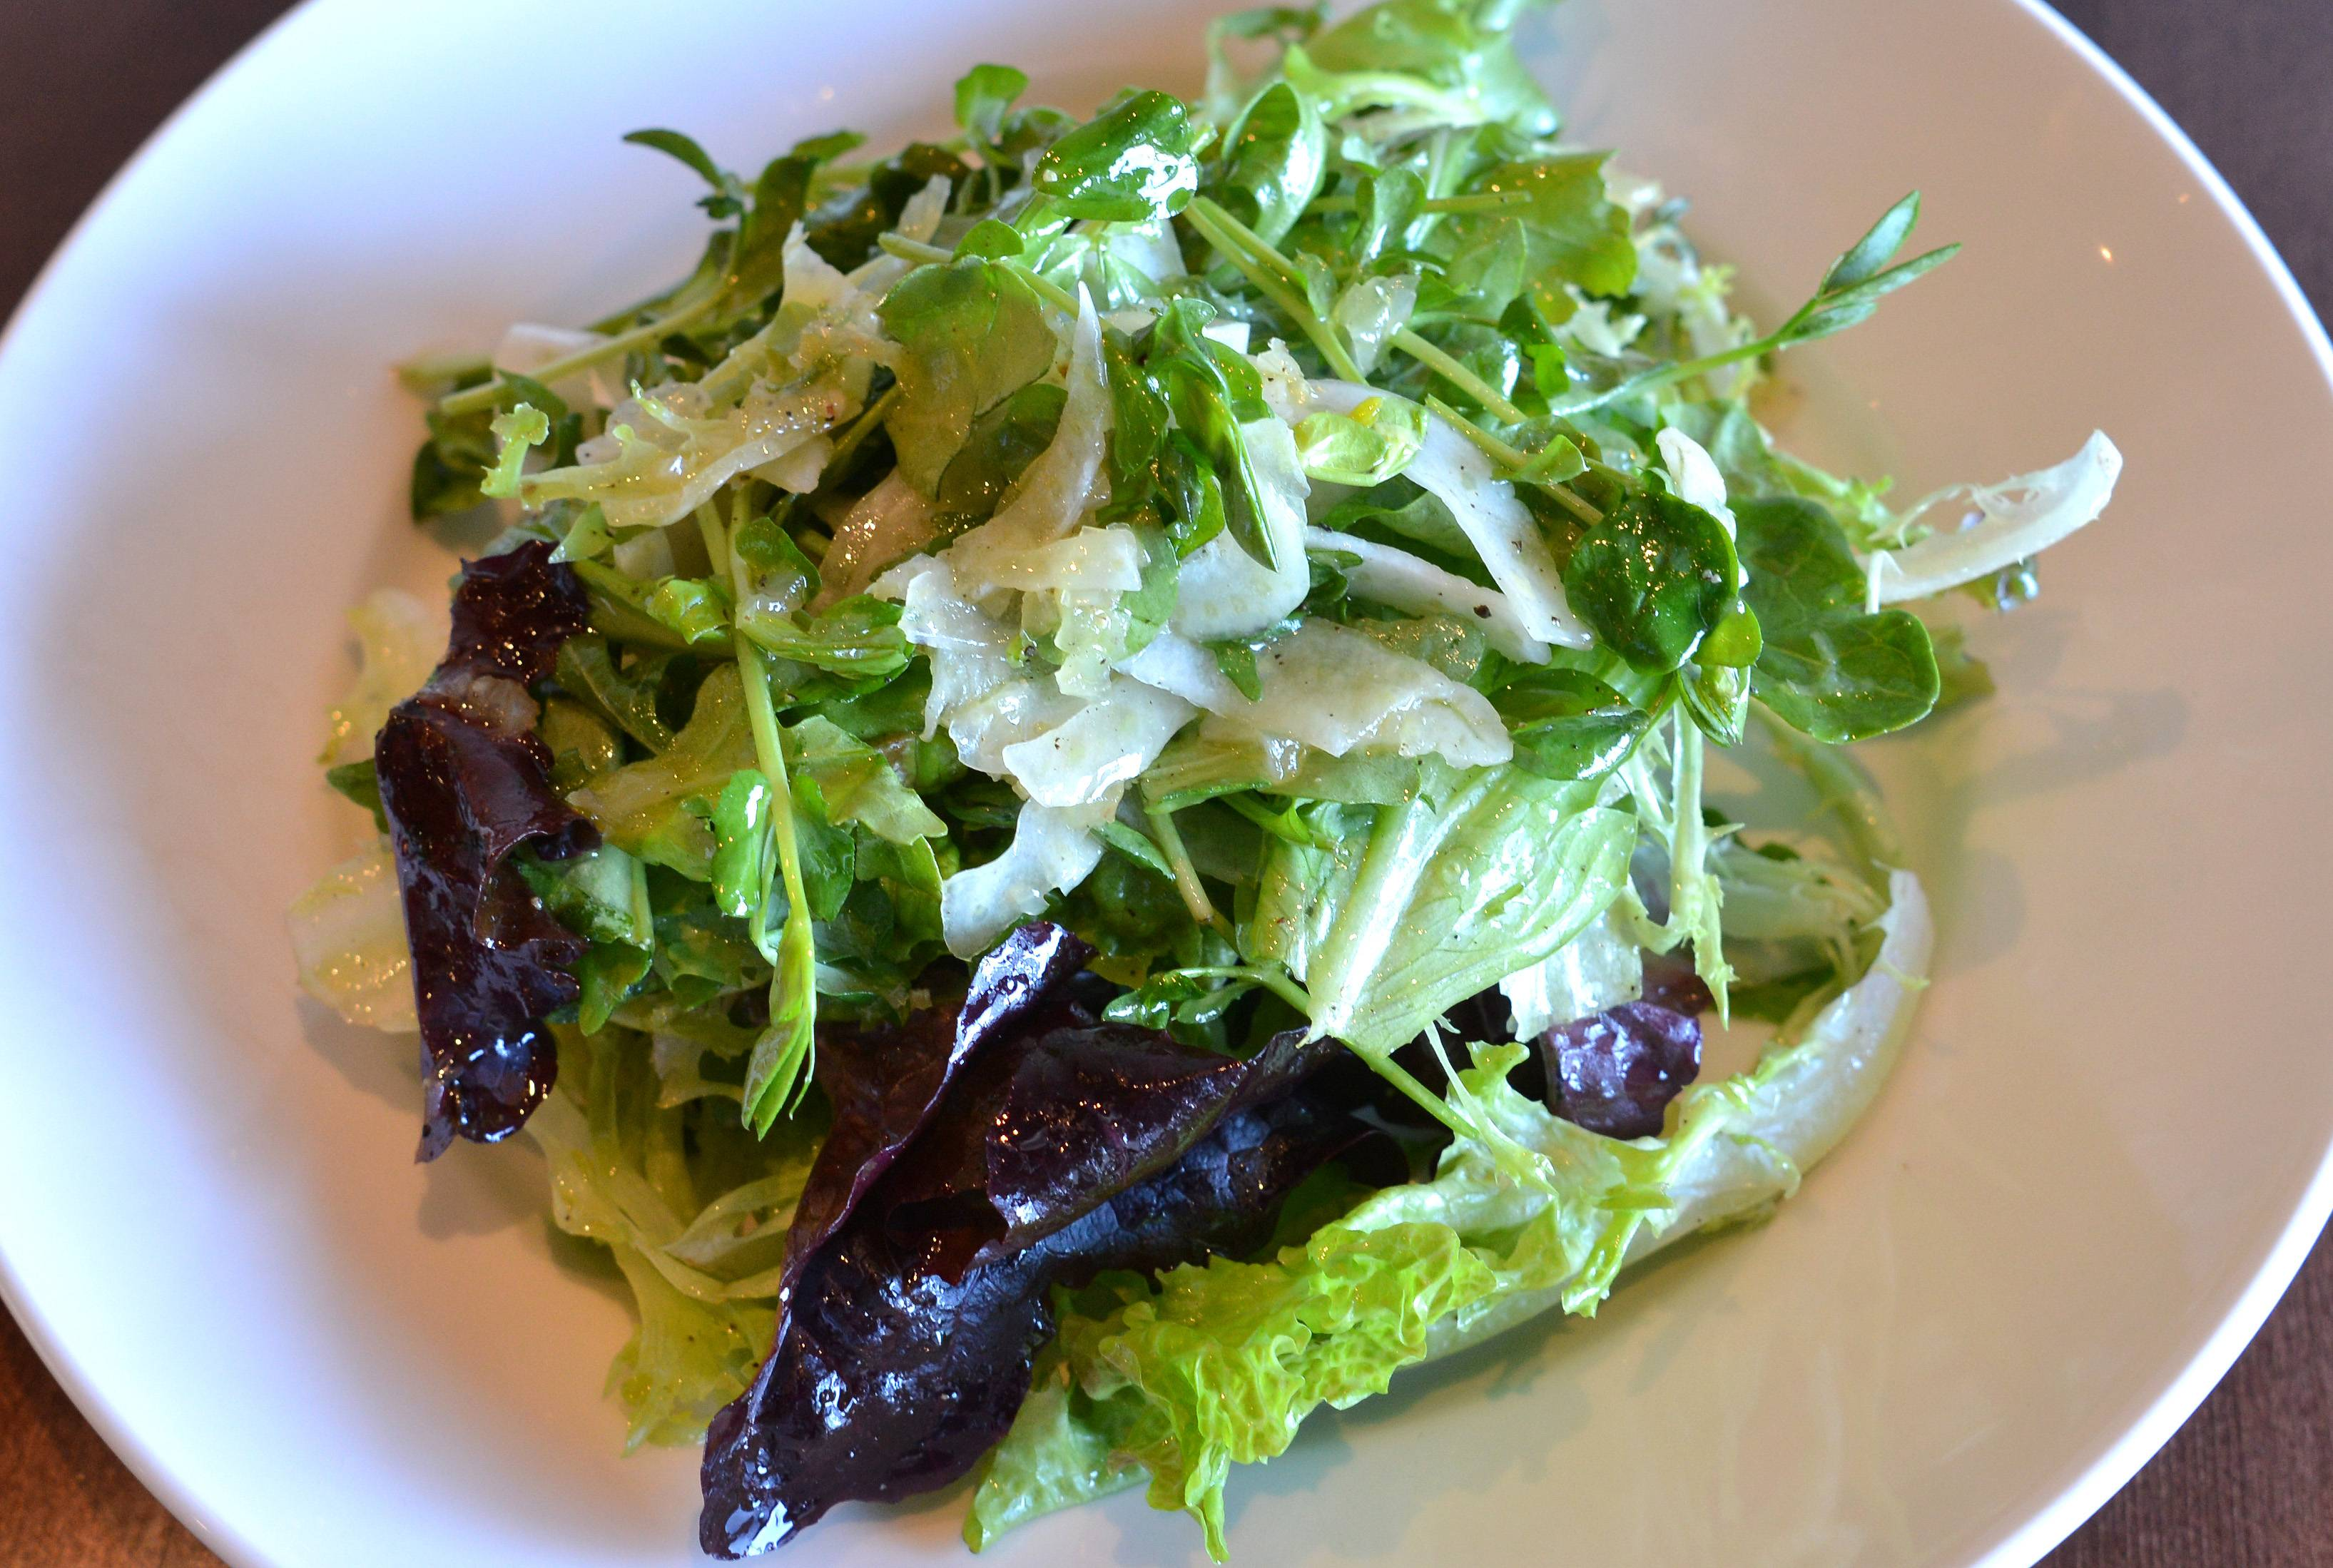 Hyper seasonal dishes, like this salad of local lettuces with lemon vinaigrette with shaved fennel, are the trademark of Vistro in Hinsdale.